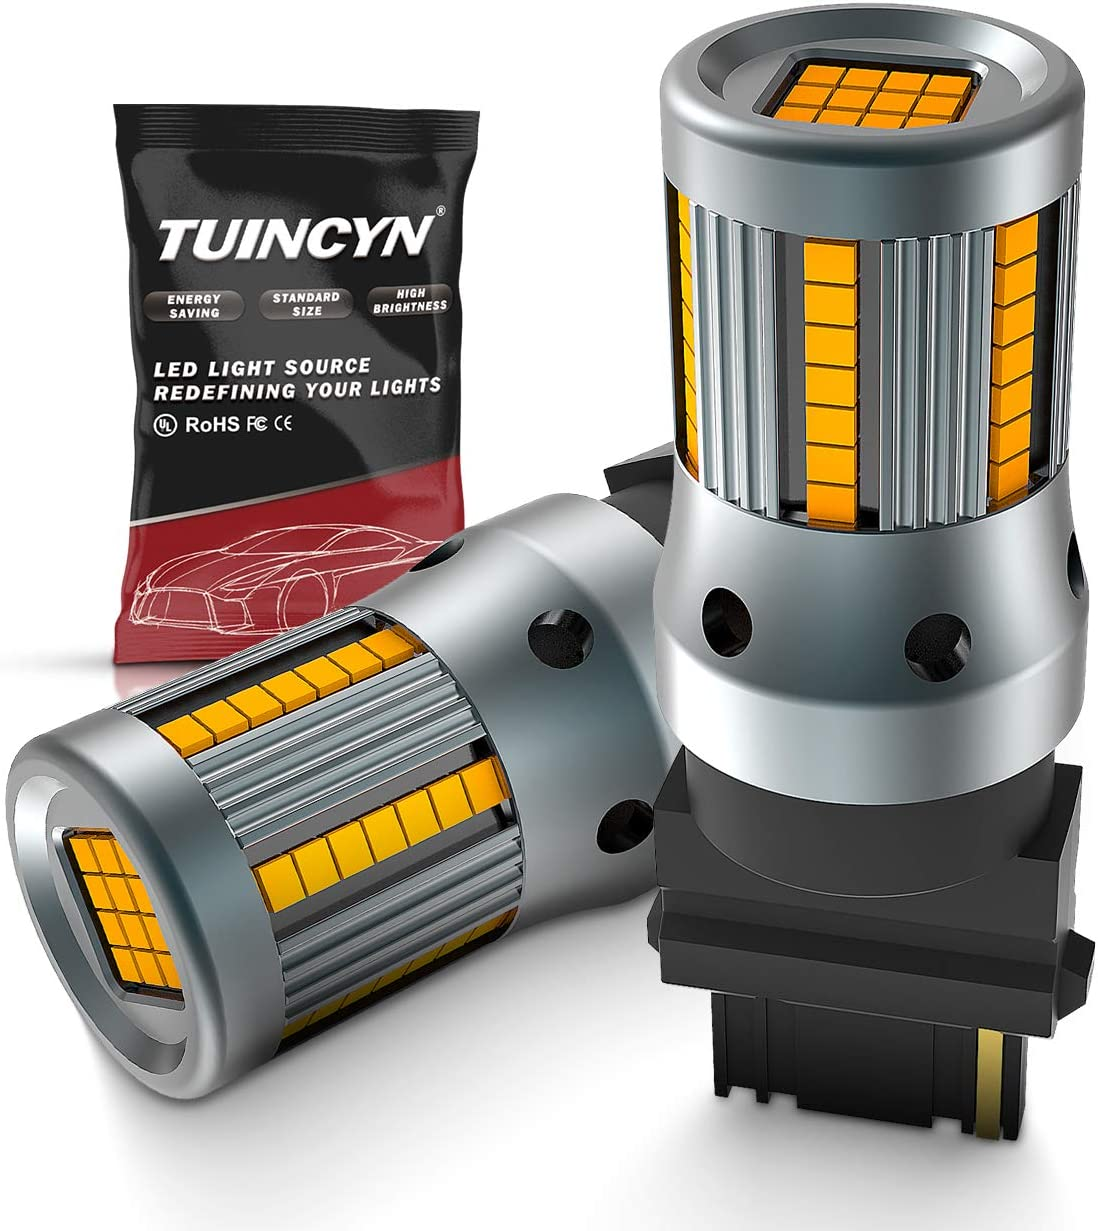 Pack of 2 TUINCYN 7440 7440NA LED Bulb CANBUS Free Amber Yellow WY21W T20 Turn Signals Light Built-in High Decoding Rate Load Resistor 54pcs LED Cree Chip Anti Hyper Flash Error Code Blinkers